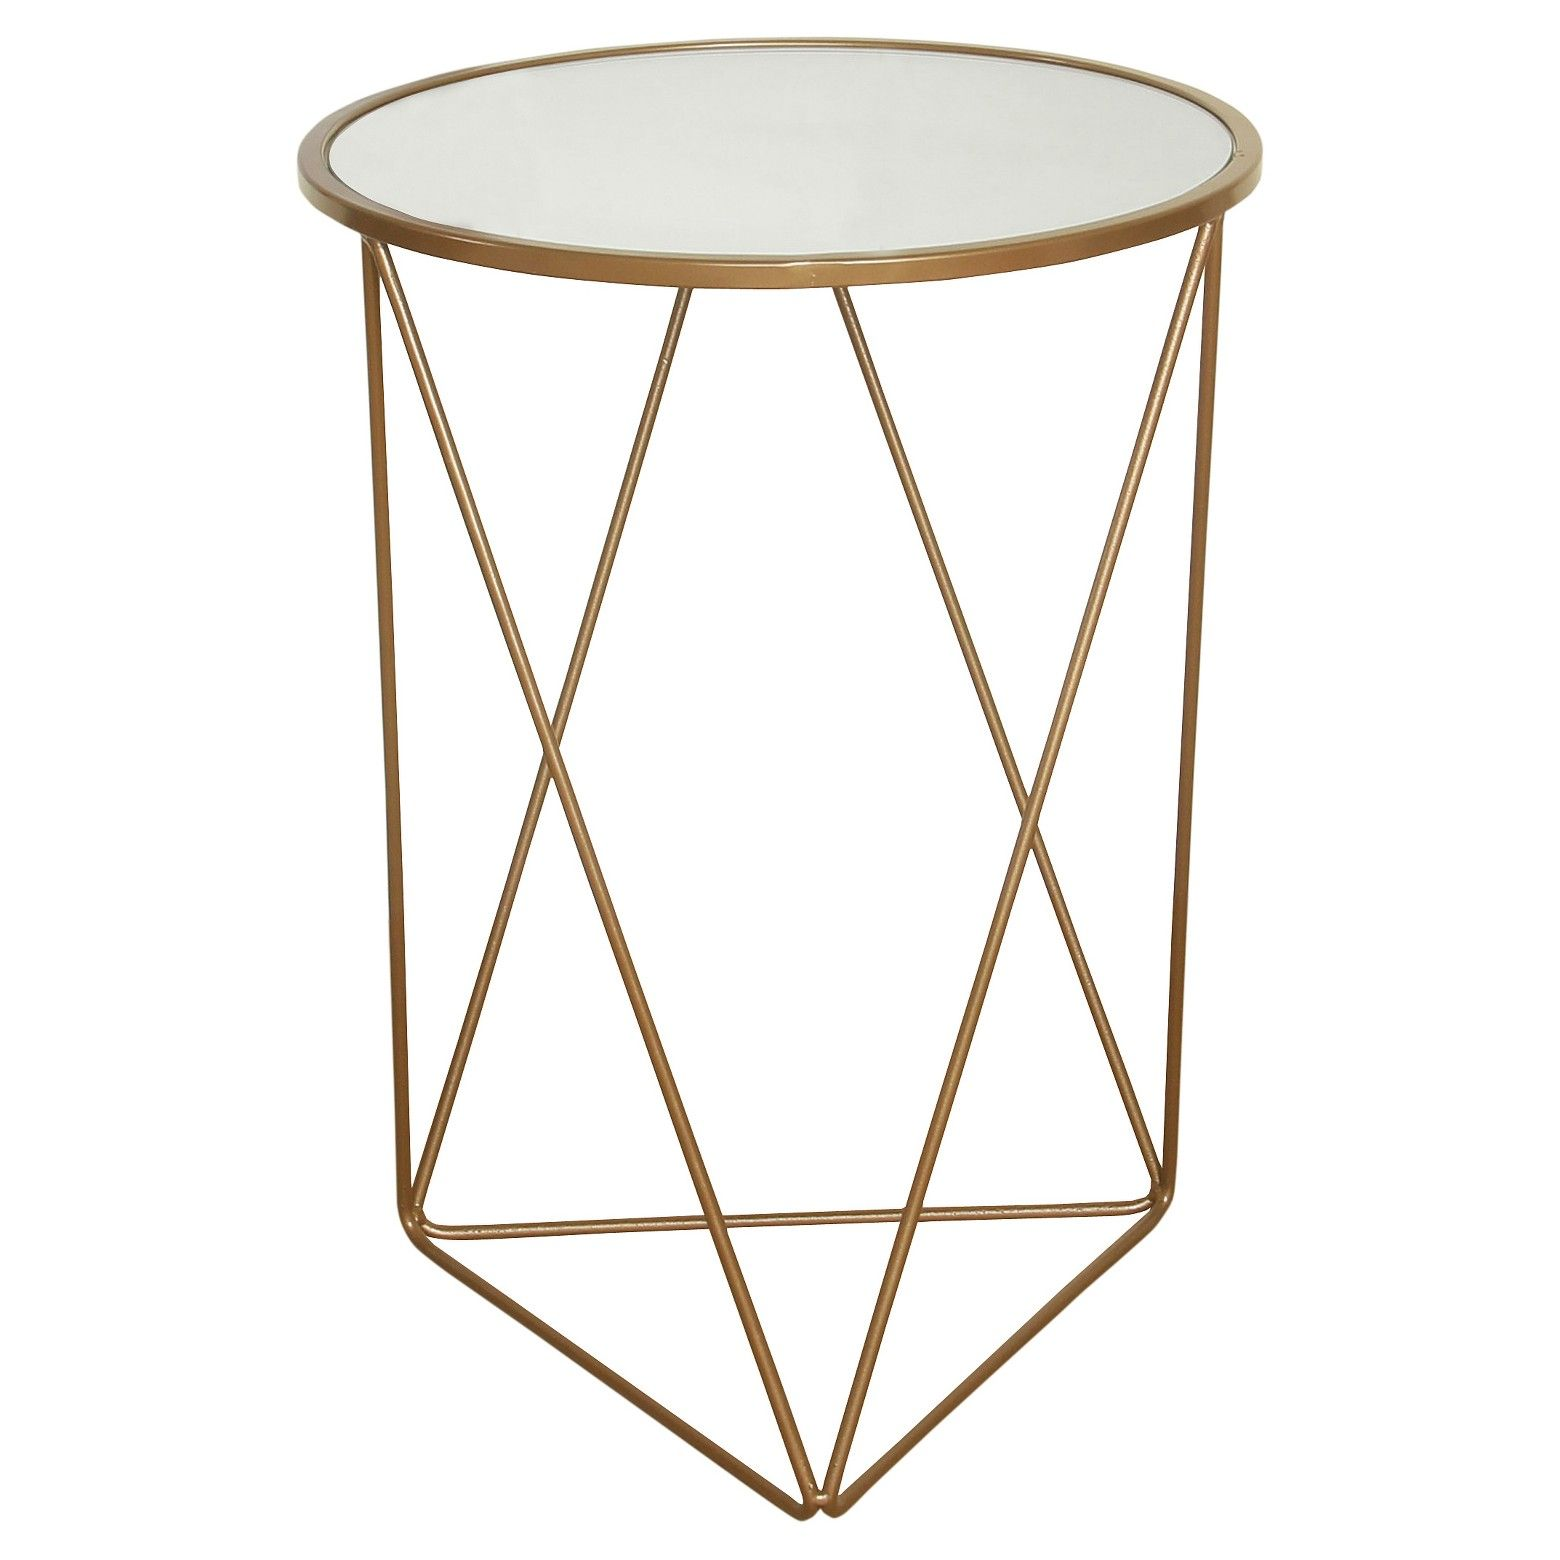 bull circular glass table topbrbull gold metal frame brbull wire accent perfect size for end night standbrbrthe ndash round nesting coffee tables height uma outdoor furniture